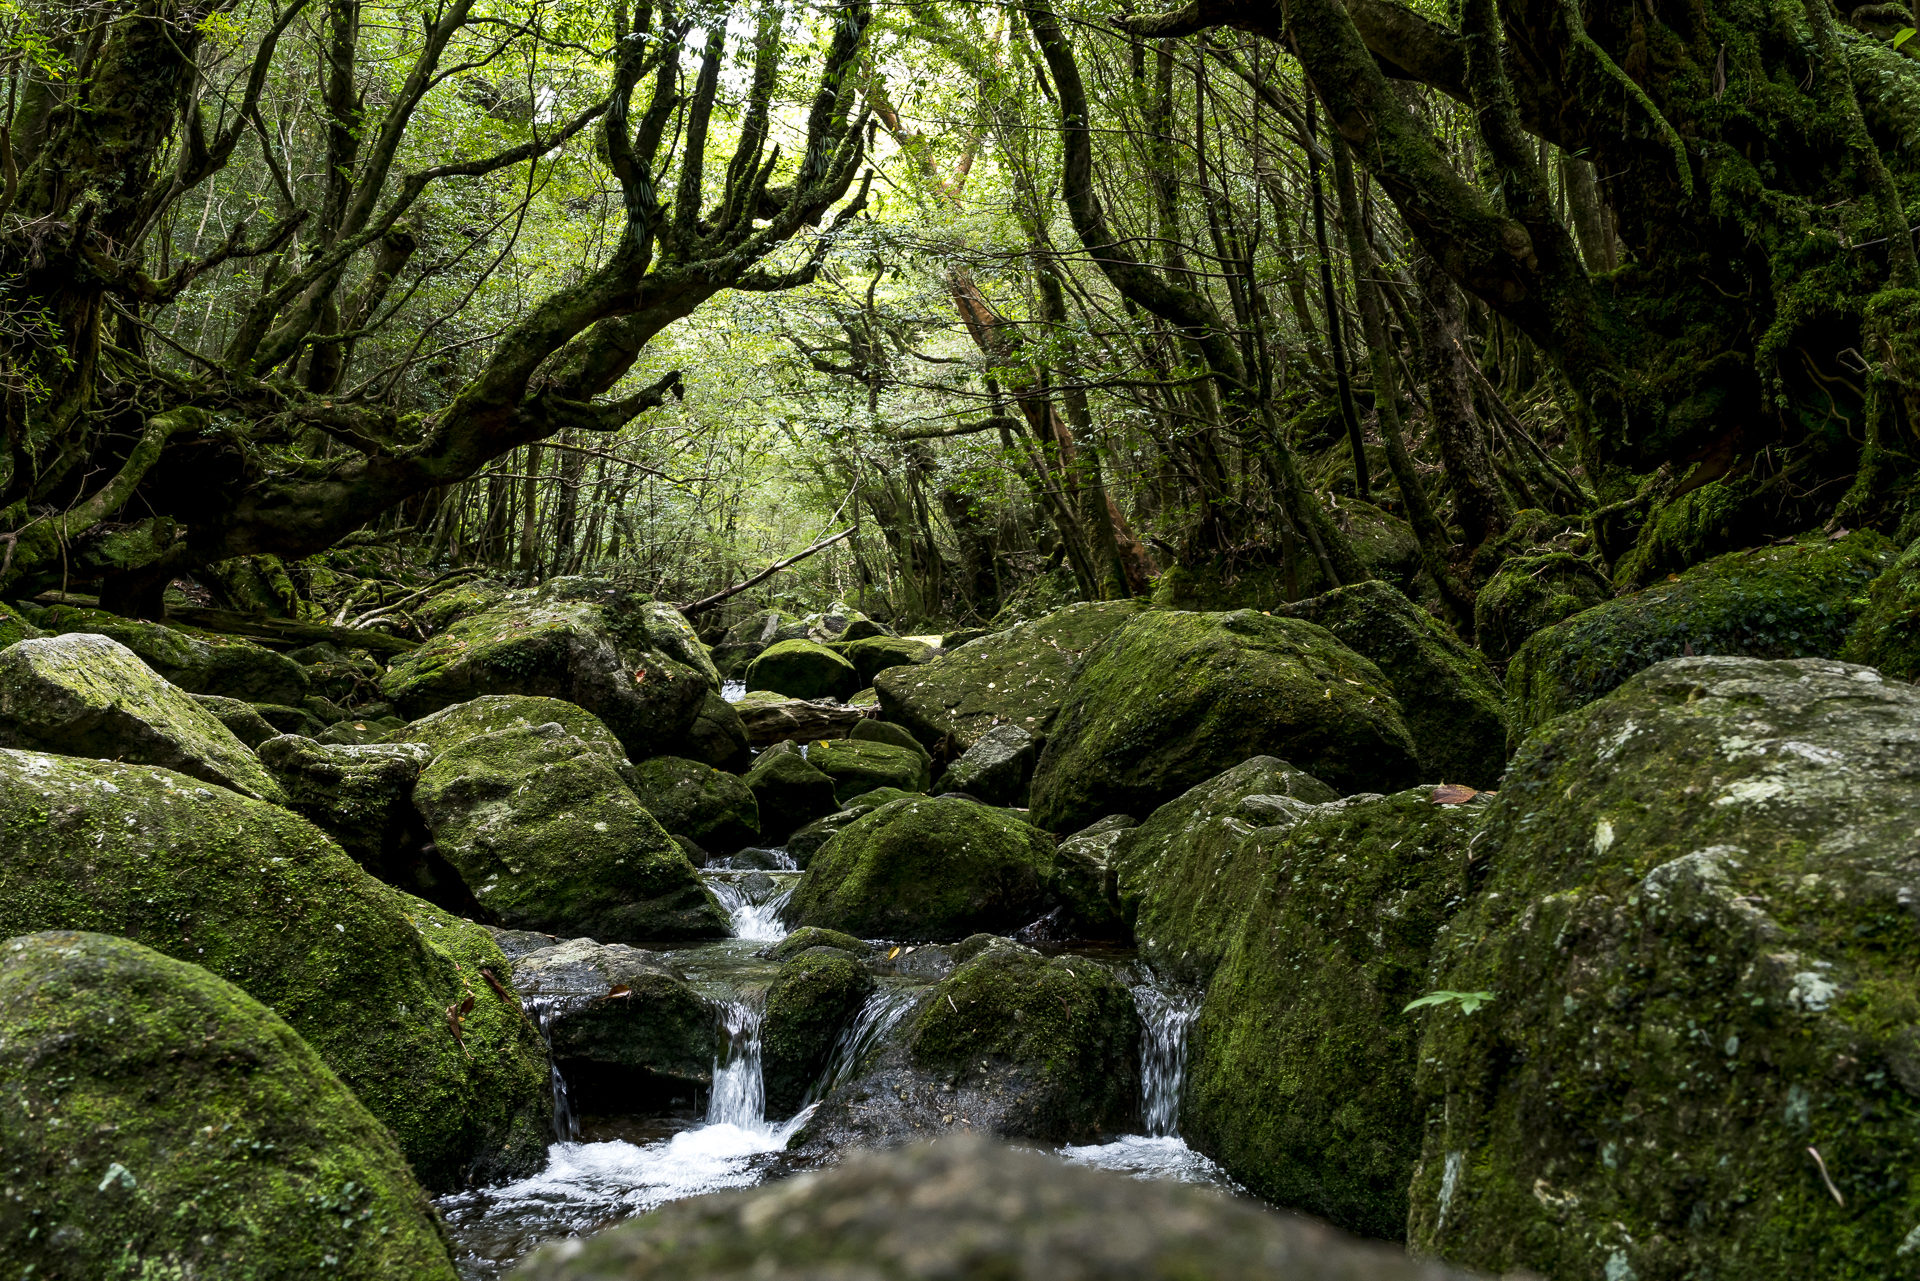 Yakushima Moss covered Forest